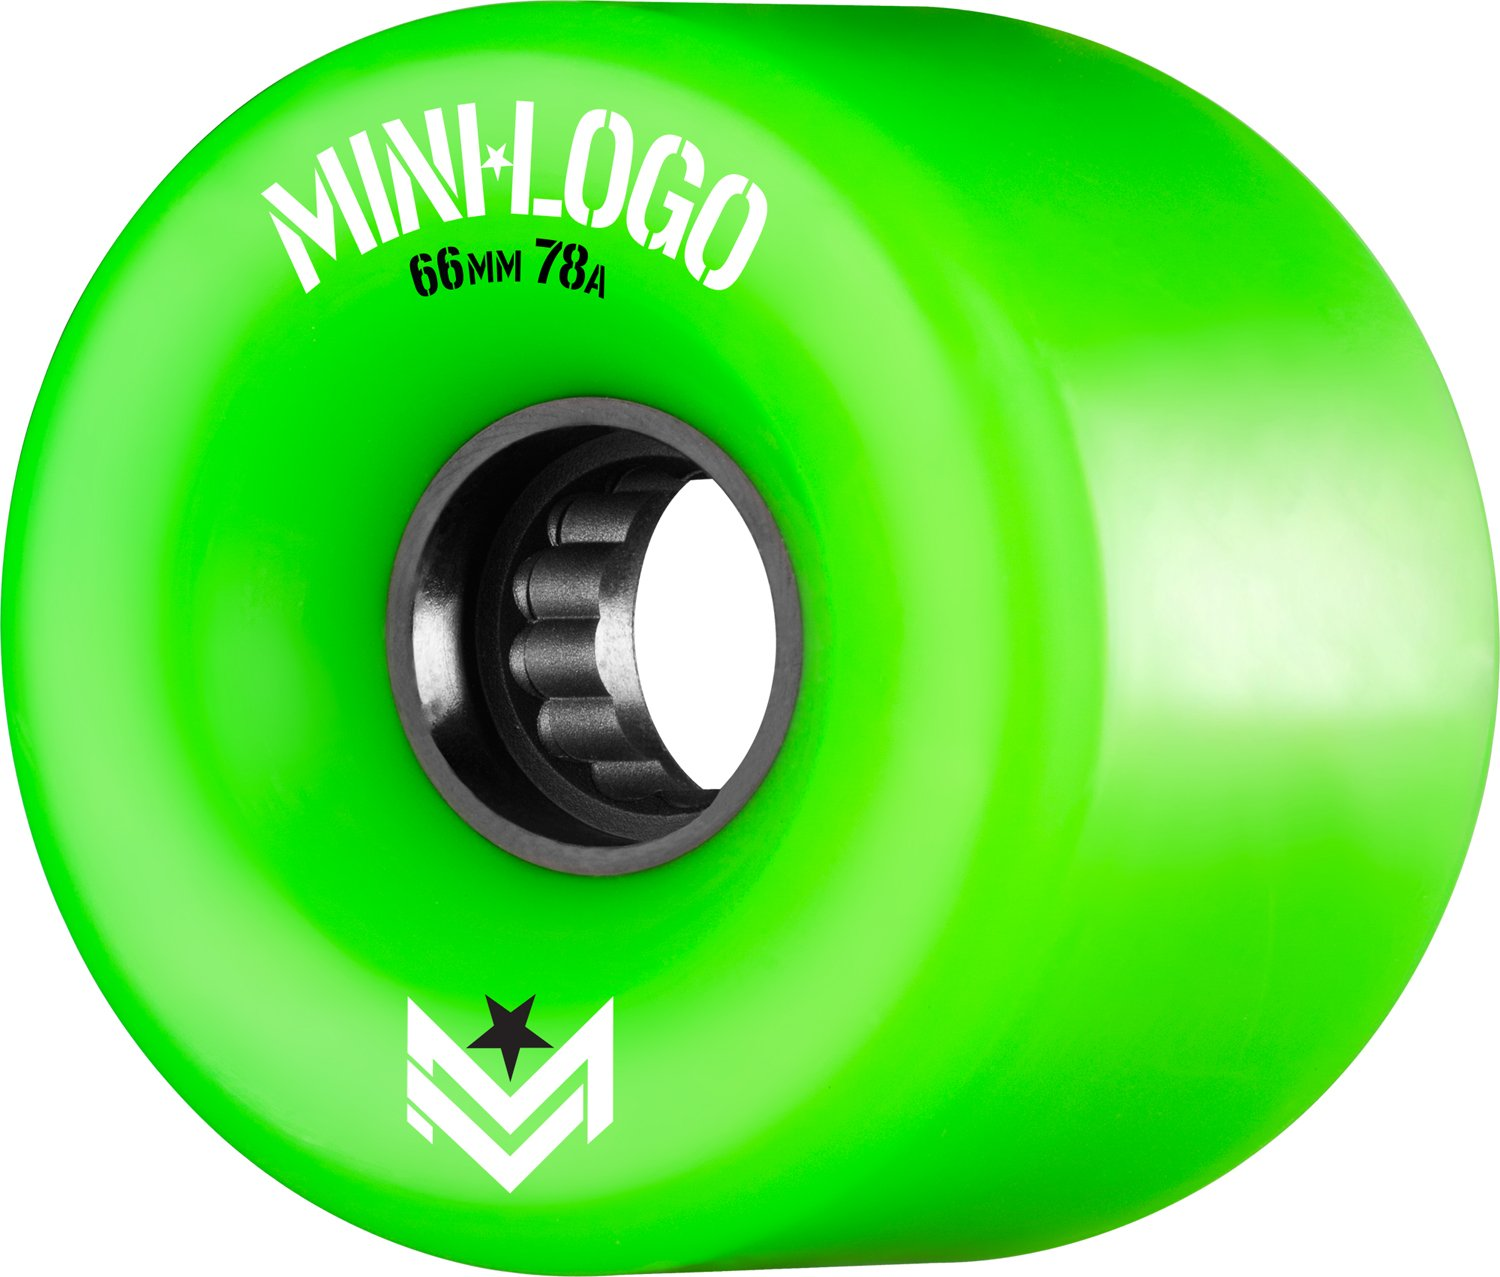 Mini-Skateboards Mini-Logo A.W.O.l. A-Cut 66 x 78A Ruedas de skate verde, 66 mm